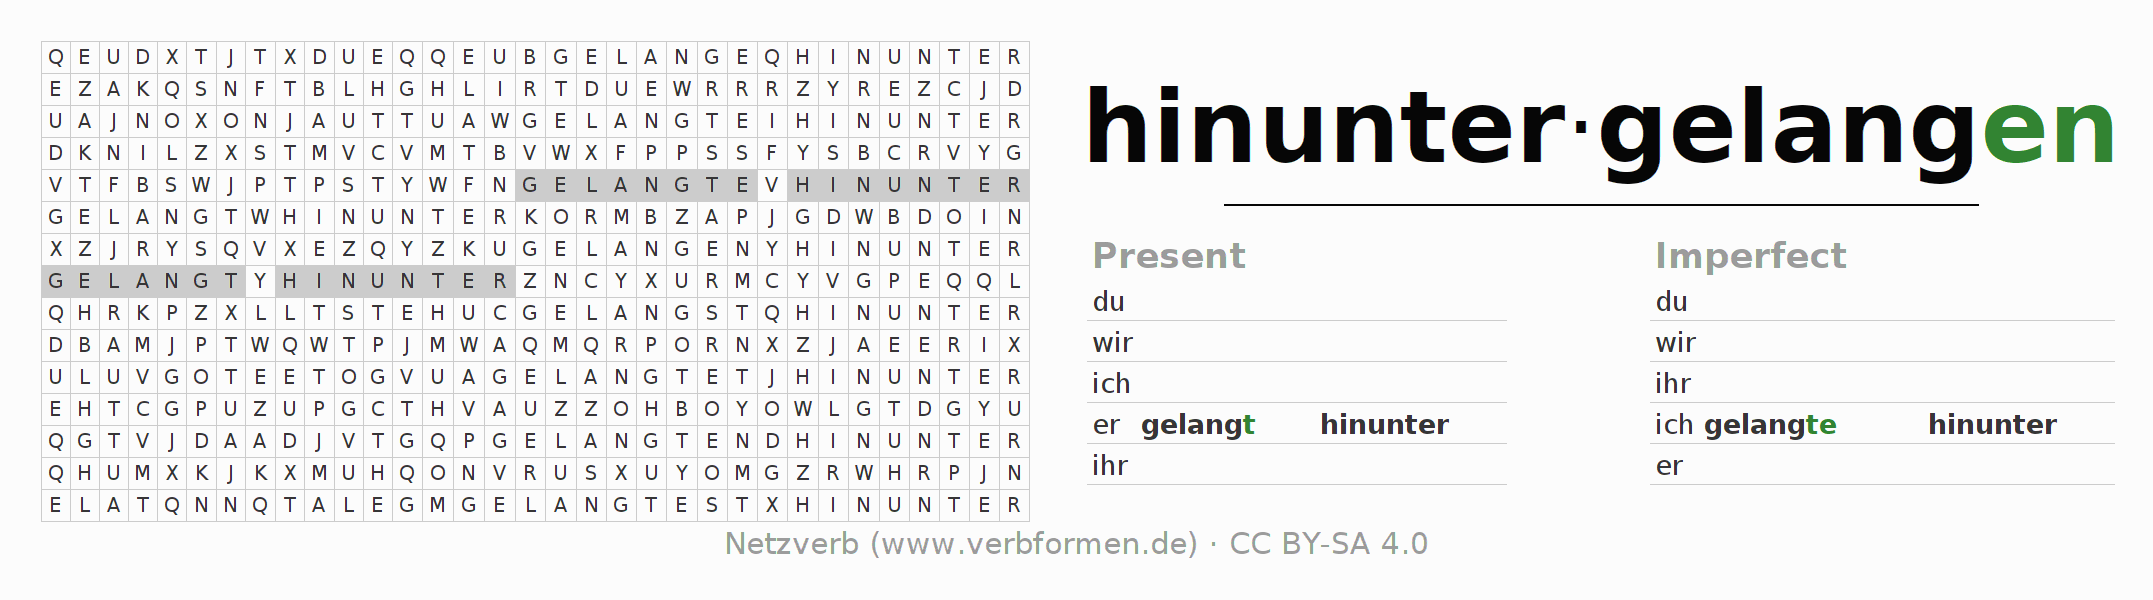 Word search puzzle for the conjugation of the verb hinuntergelangen